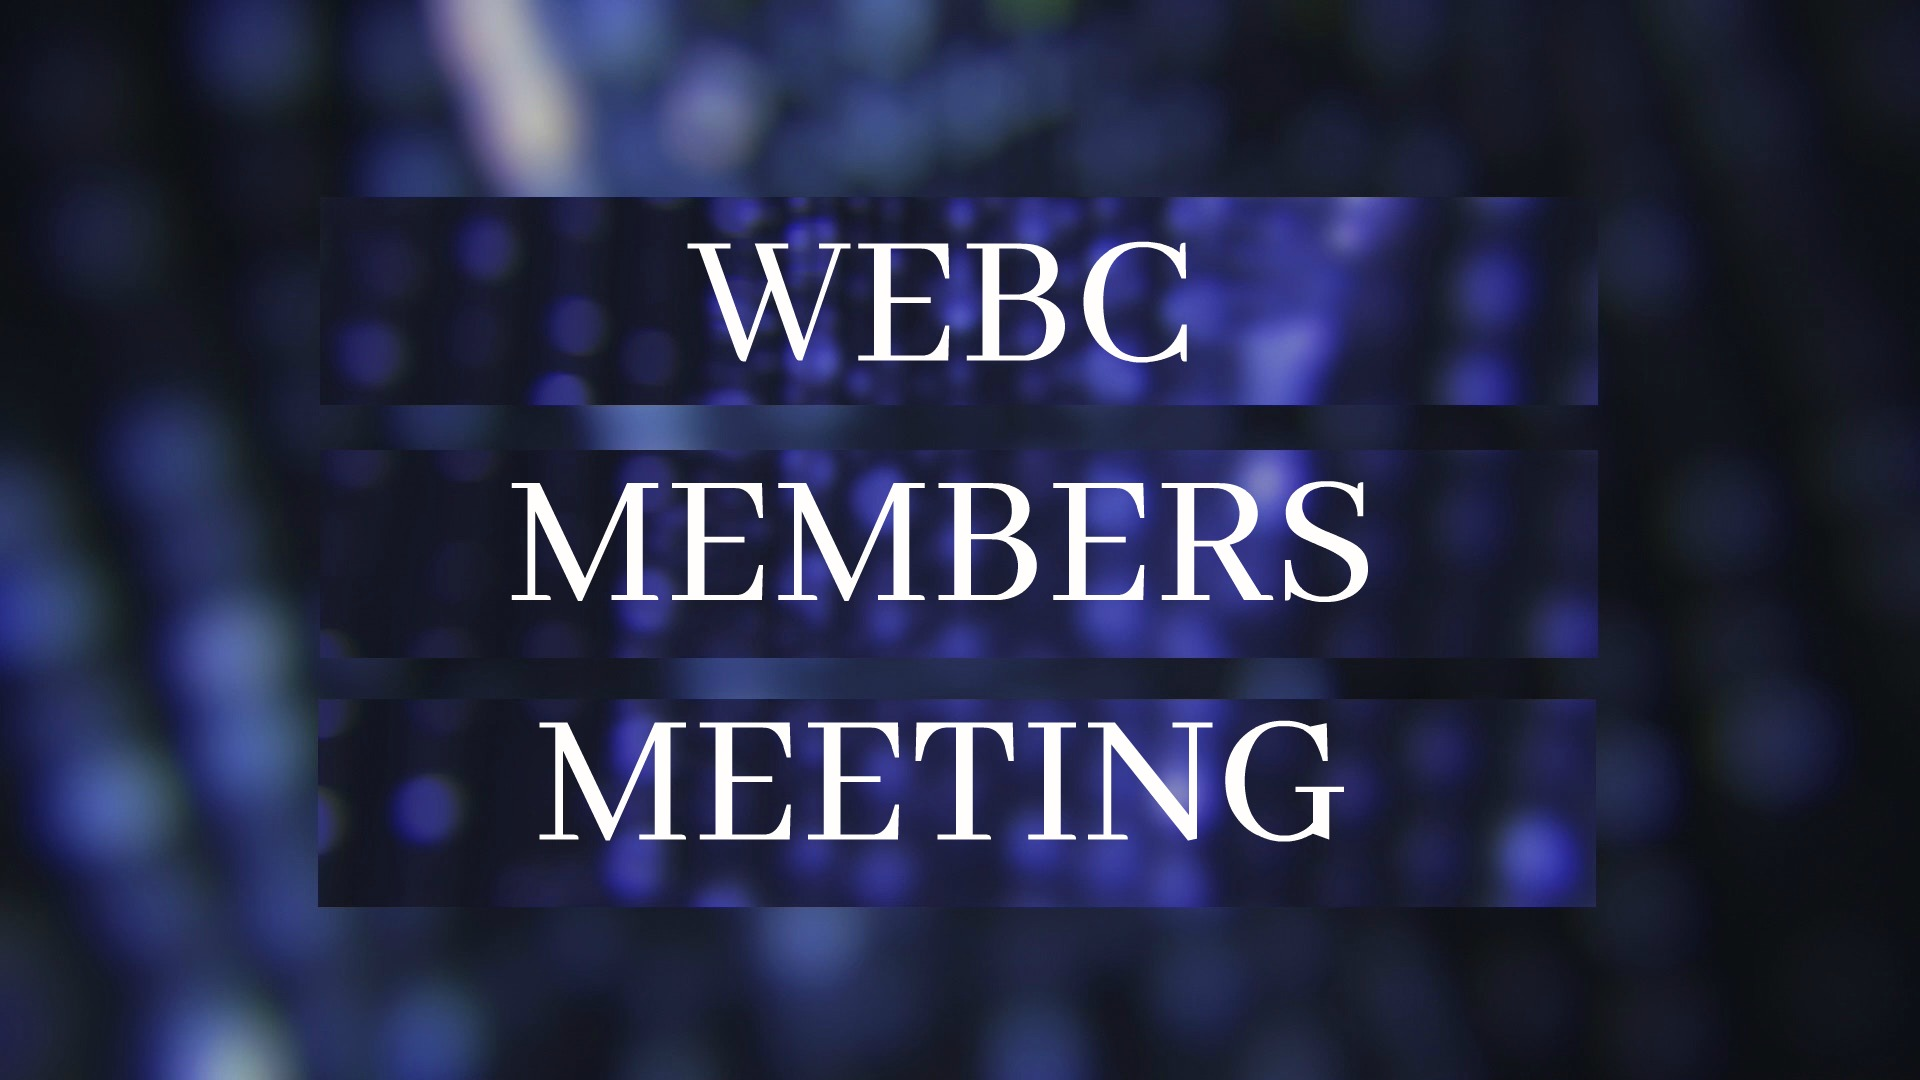 WEBC Members Meeting - On Sunday, September 22nd, join us for lunch after service followed by our quarterly meeting for WEBC members.